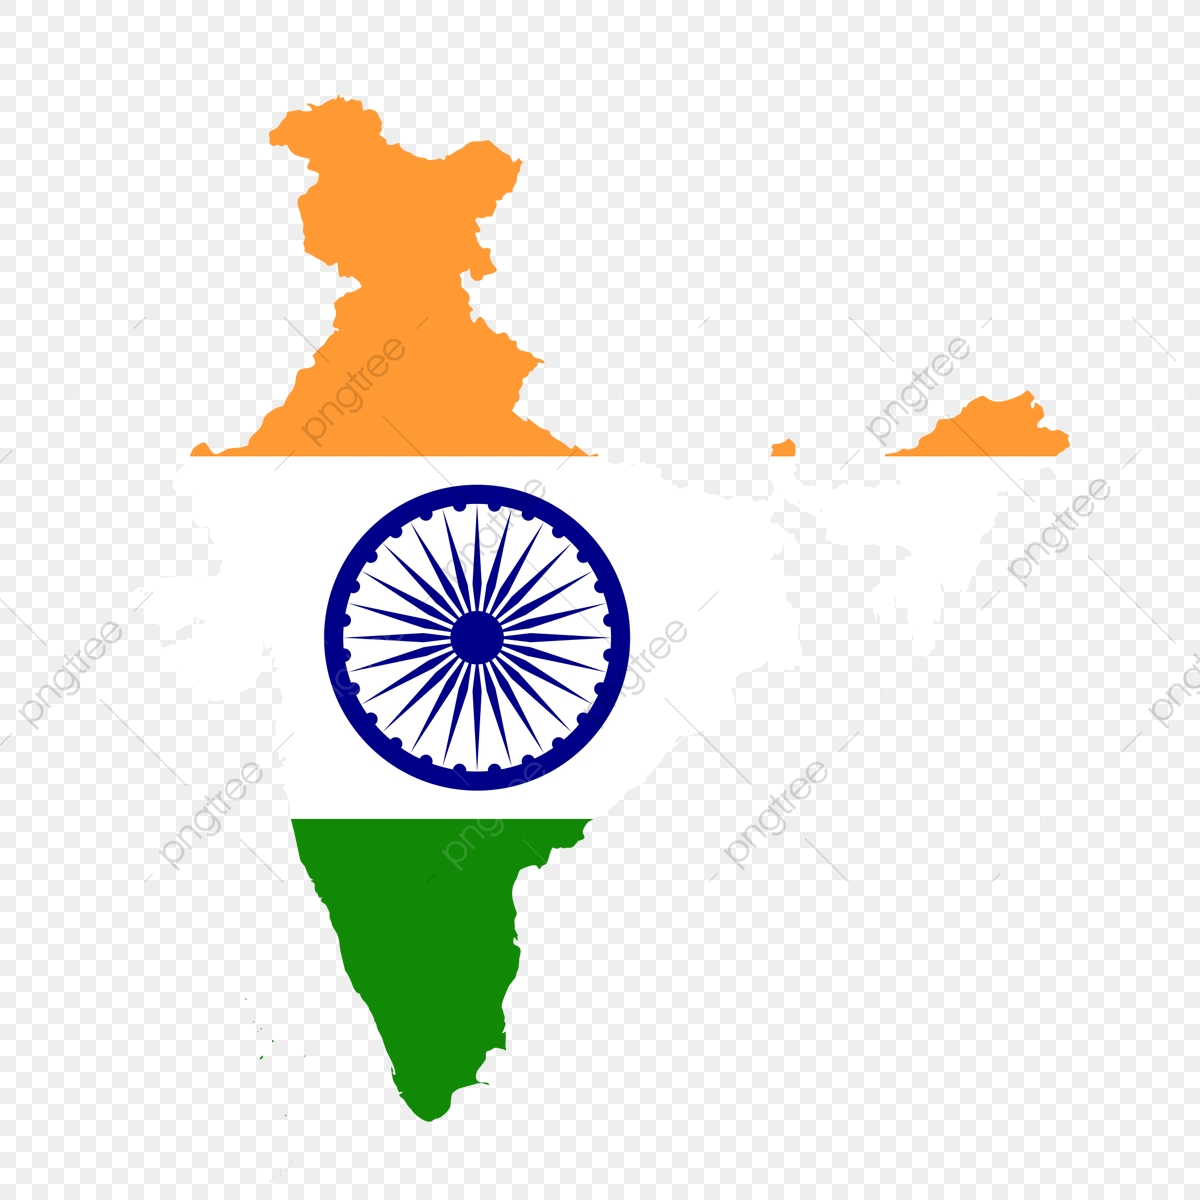 Indian Flag In India Map, Indian Republic Day, Indian, Republic PNG.